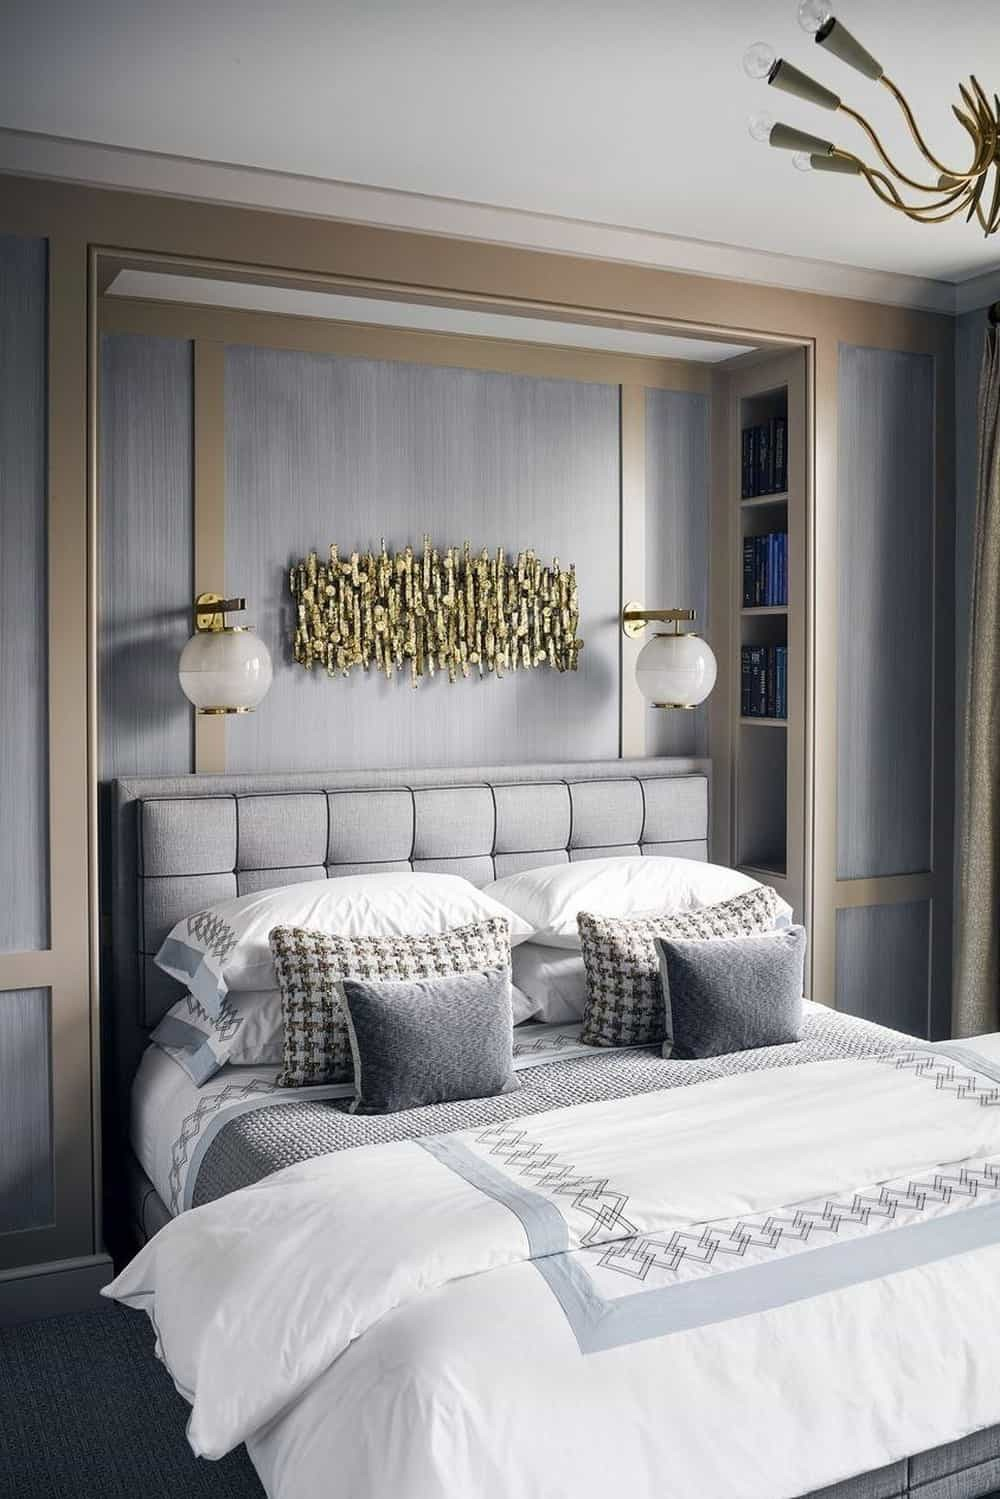 9 Exquisite Bedroom Lighting Ideas for a Modern Interior Decor 1